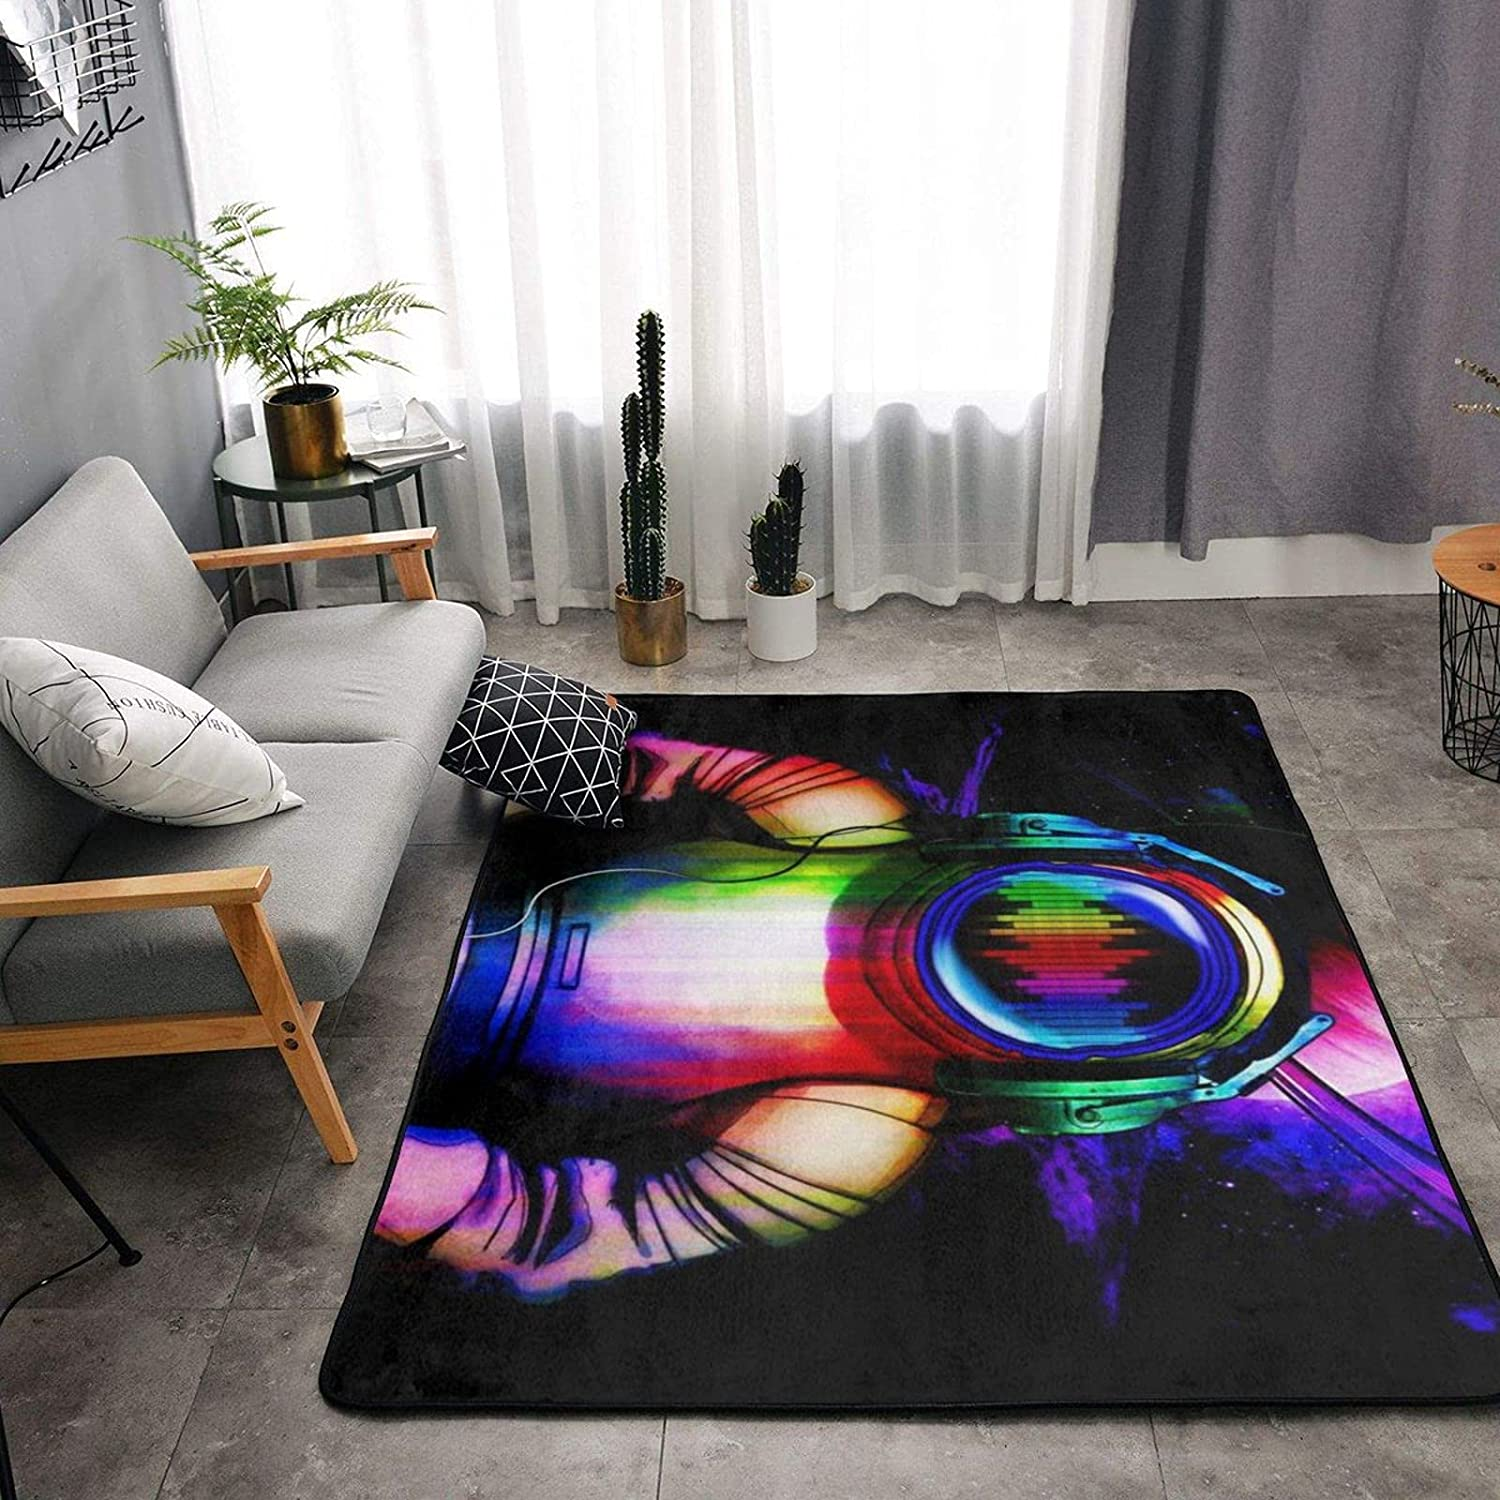 Galaxy Music Astronaut Soft Area Rugs for Bedroom, Washable Fluffy Carpets for Nursery Baby Rooms Non Slip Kids Play Mats Holiday Decor Rug, 4x5 Feet